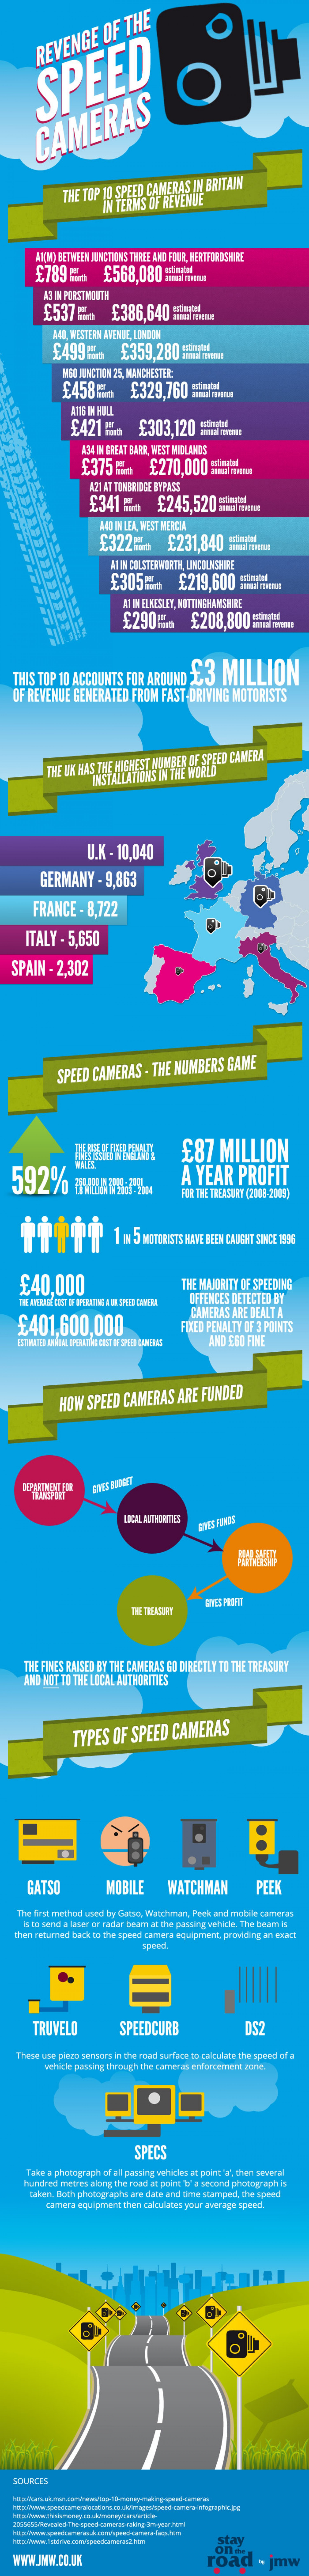 Revenge of the Speed Cameras